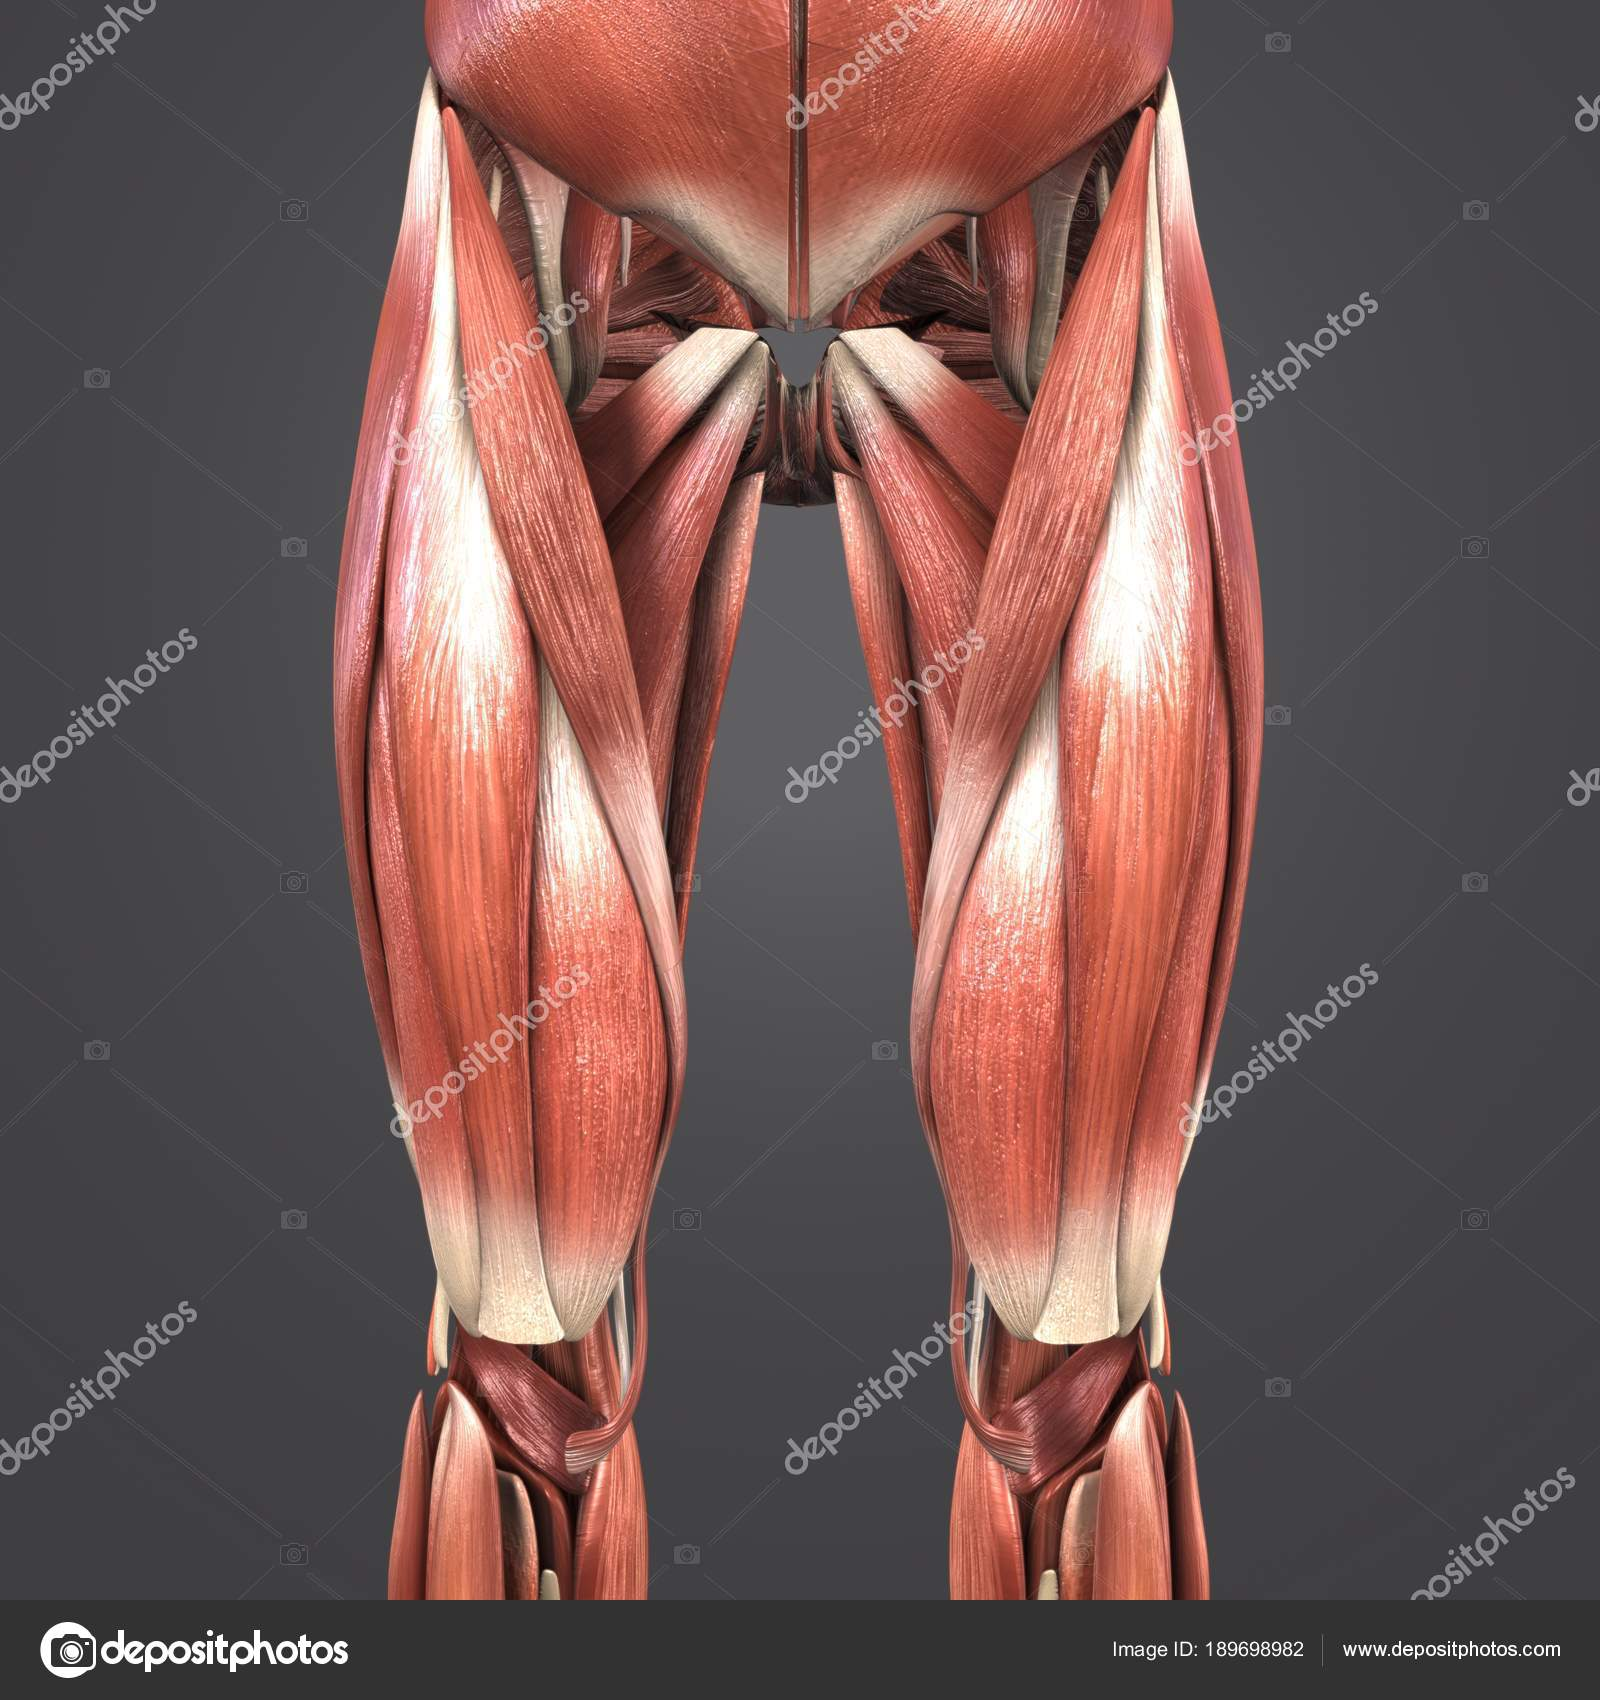 Colorful Medical Illustration Human Muscles Hip Thigh Stock Photo